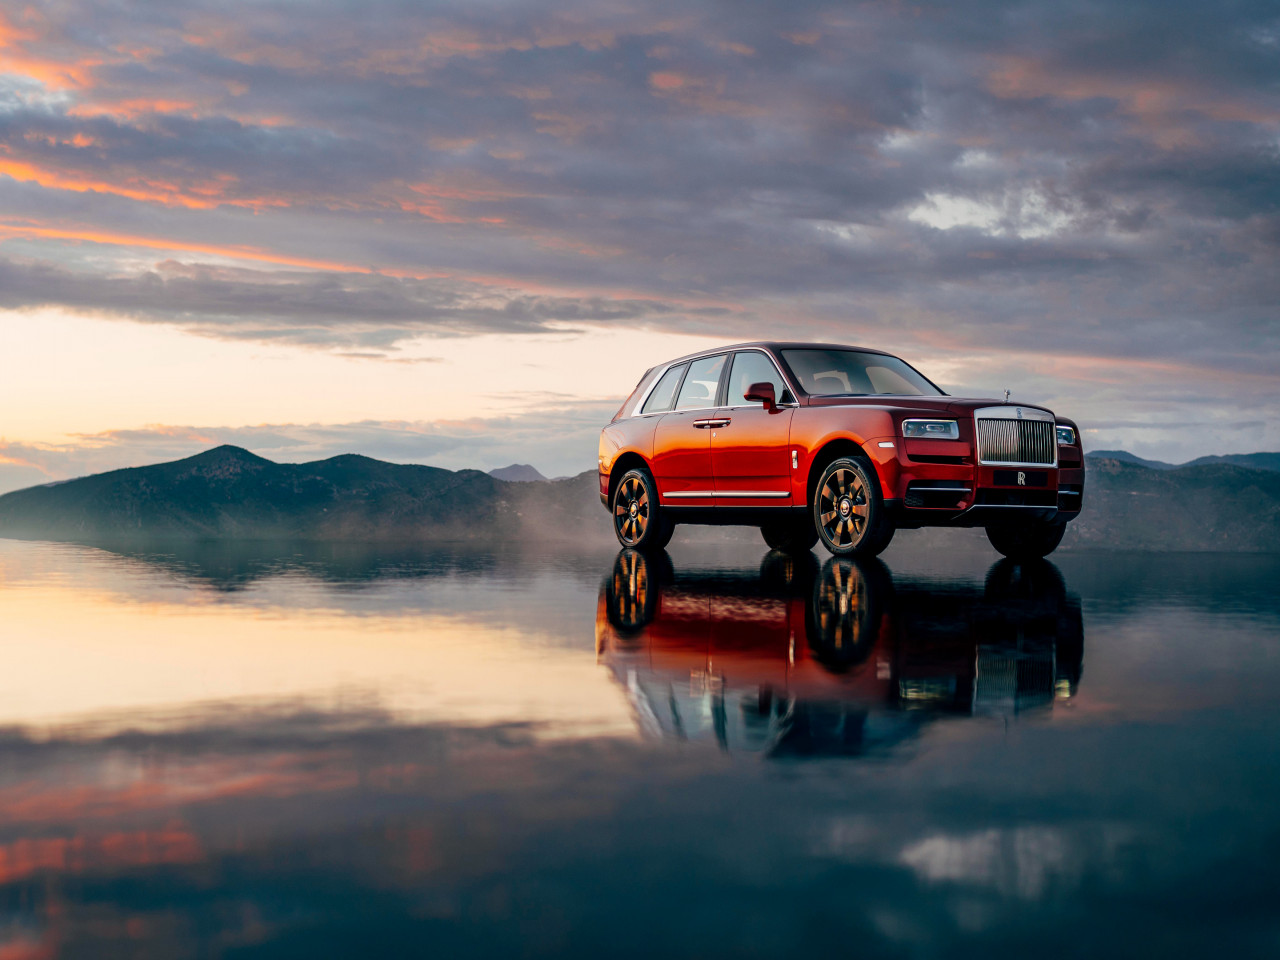 Rolls Royce Cullinan | 1280x960 wallpaper